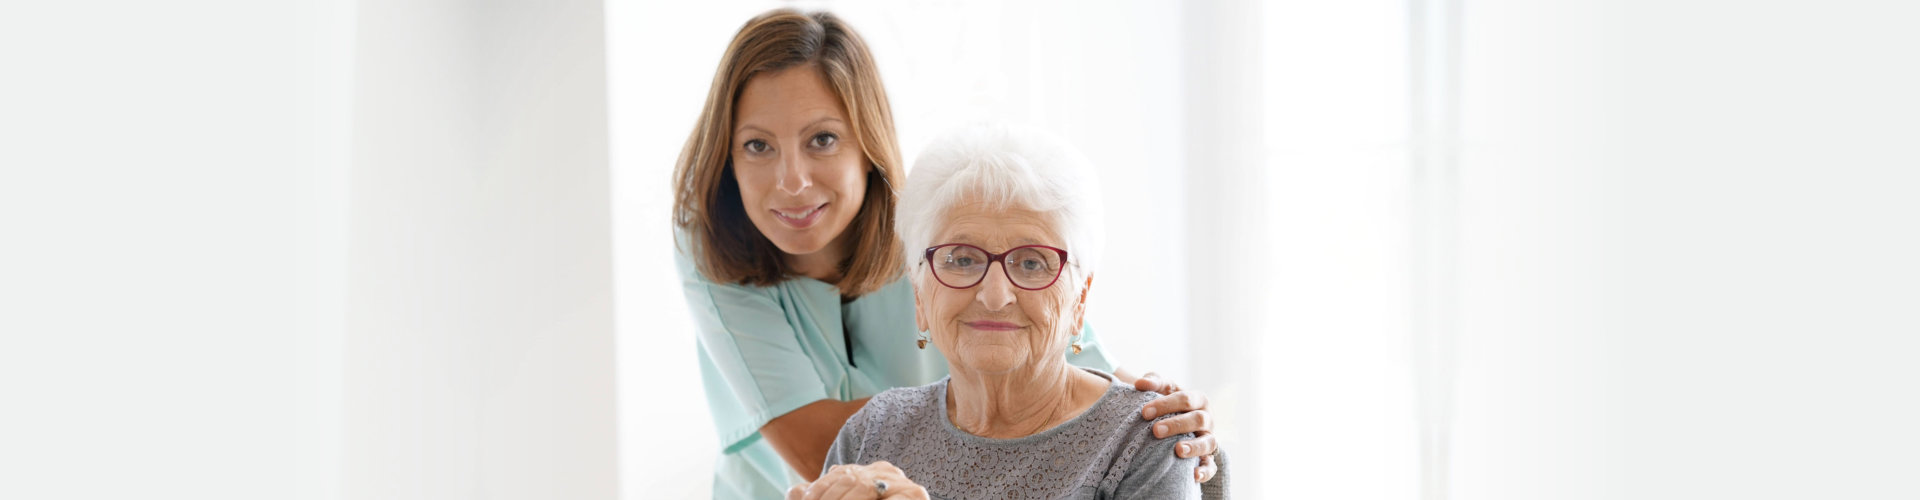 female caregiver with her old woman patient